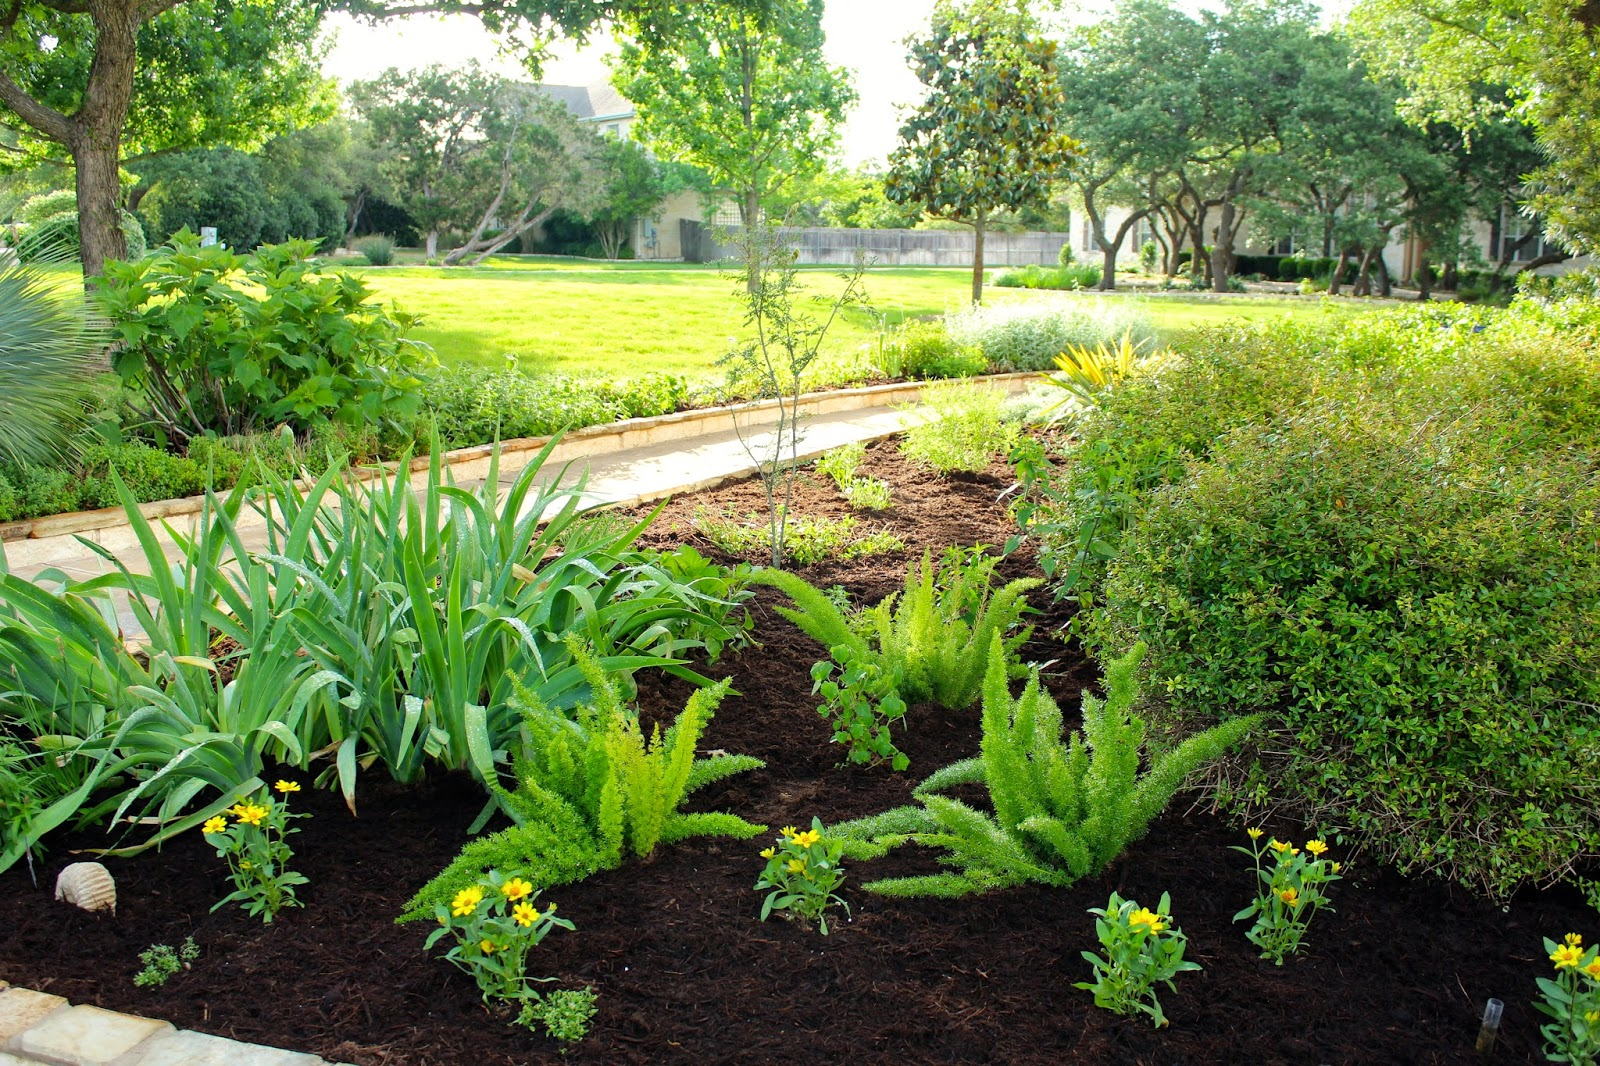 Landscaping With Ferns : Sharing nature s garden spring spruce up